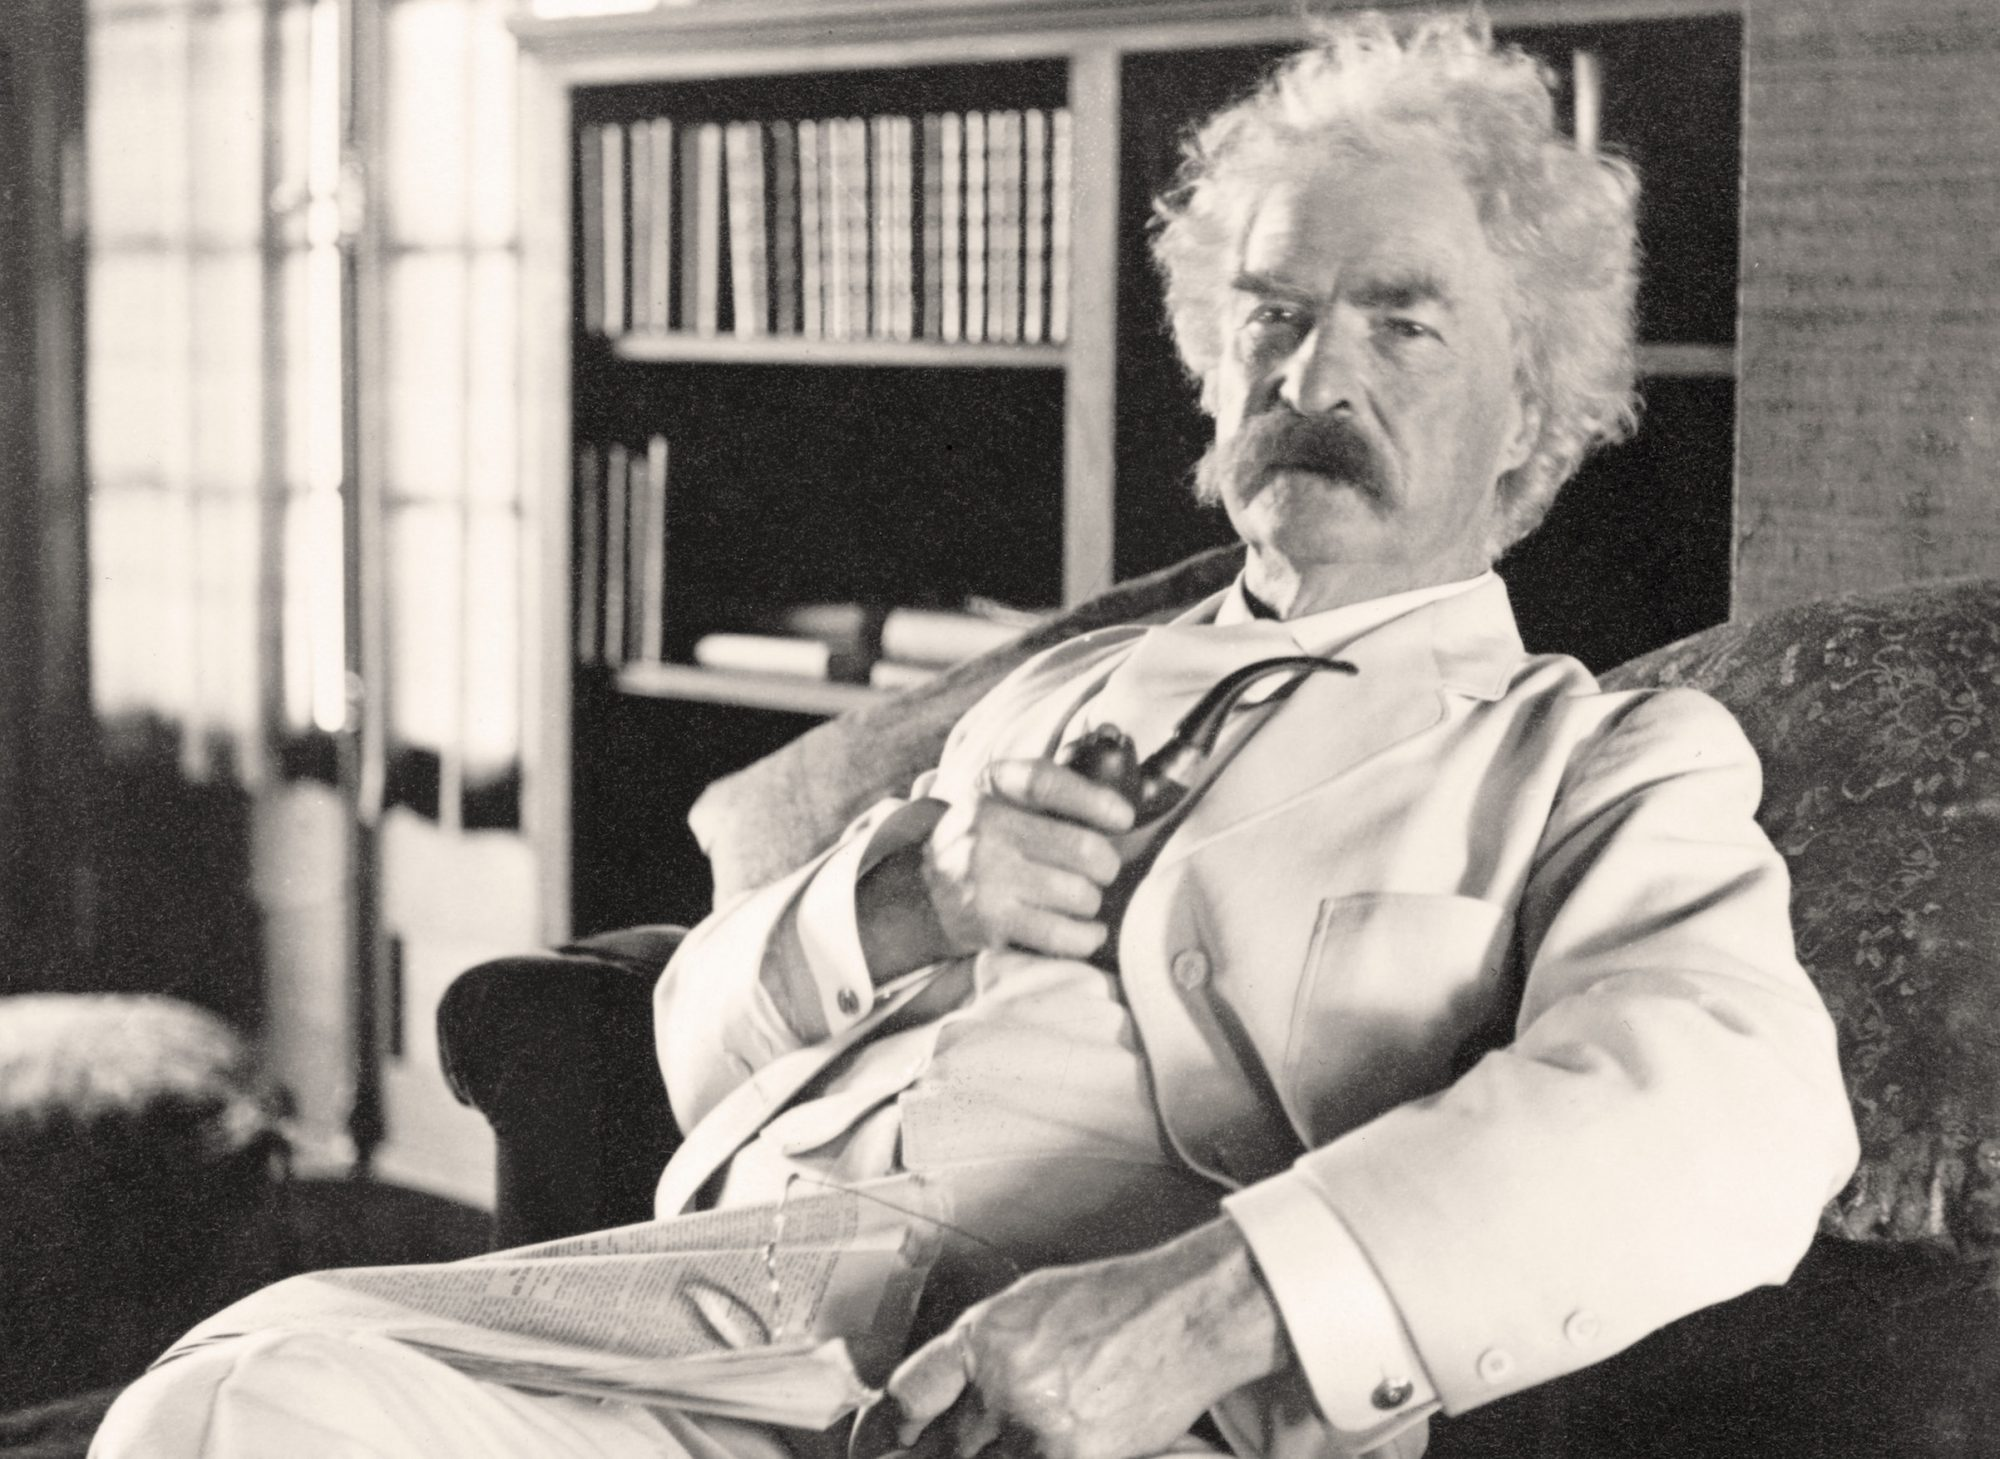 Samuel Langhorne Clemens 1835 to 1910 known by pen name Mark Twain American humorist, satirist, writer, and lecturer From photograph taken in his old age